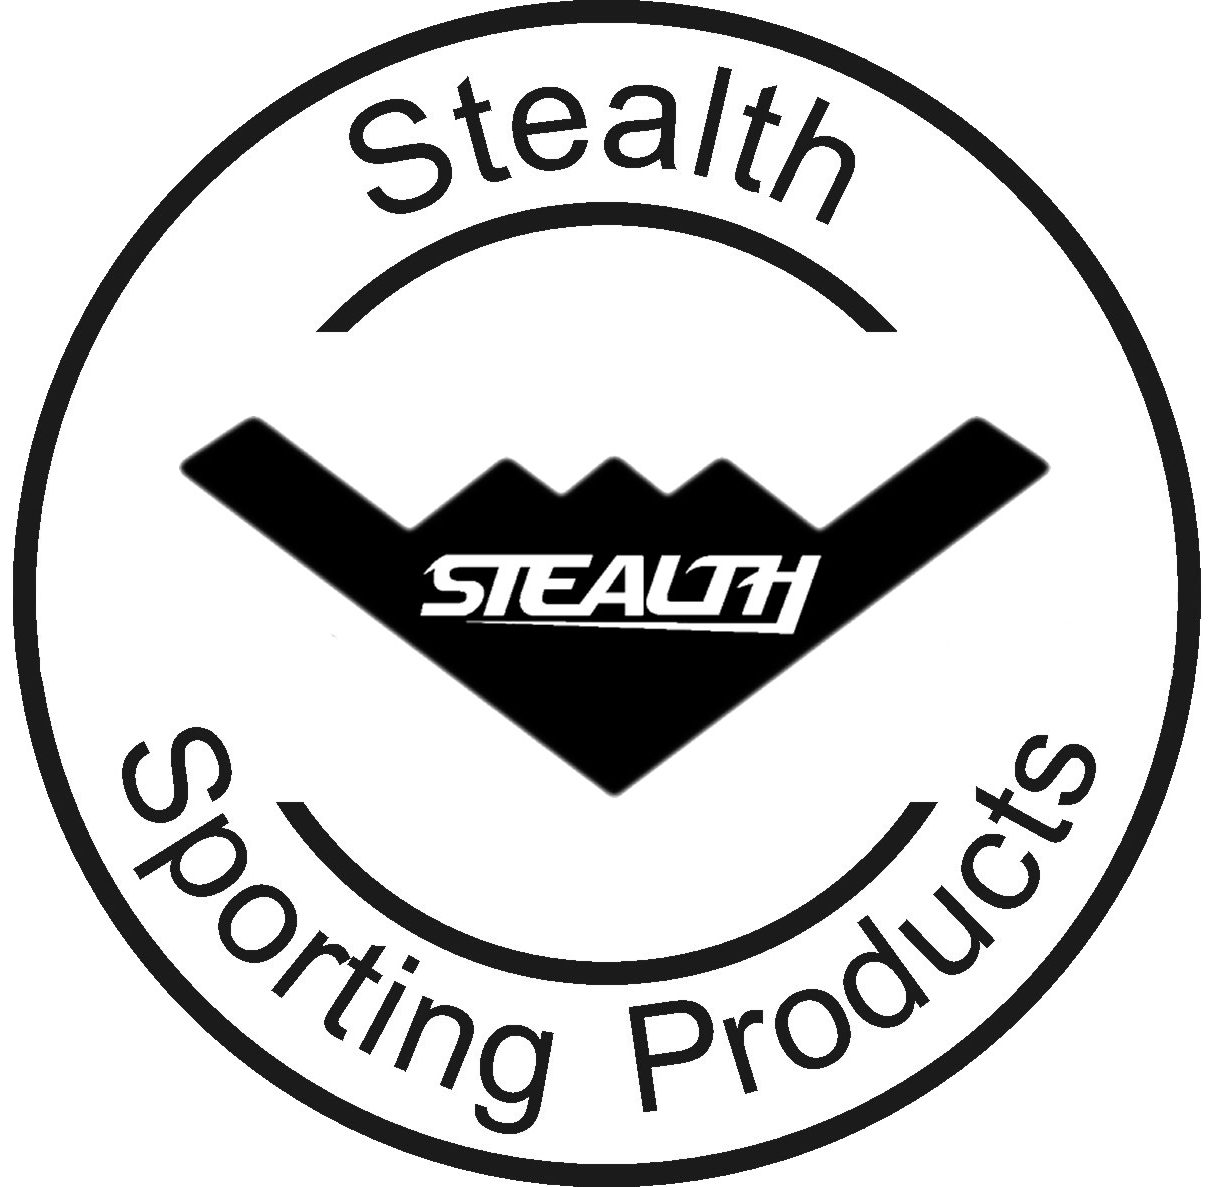 The home of Stealth Sporting products